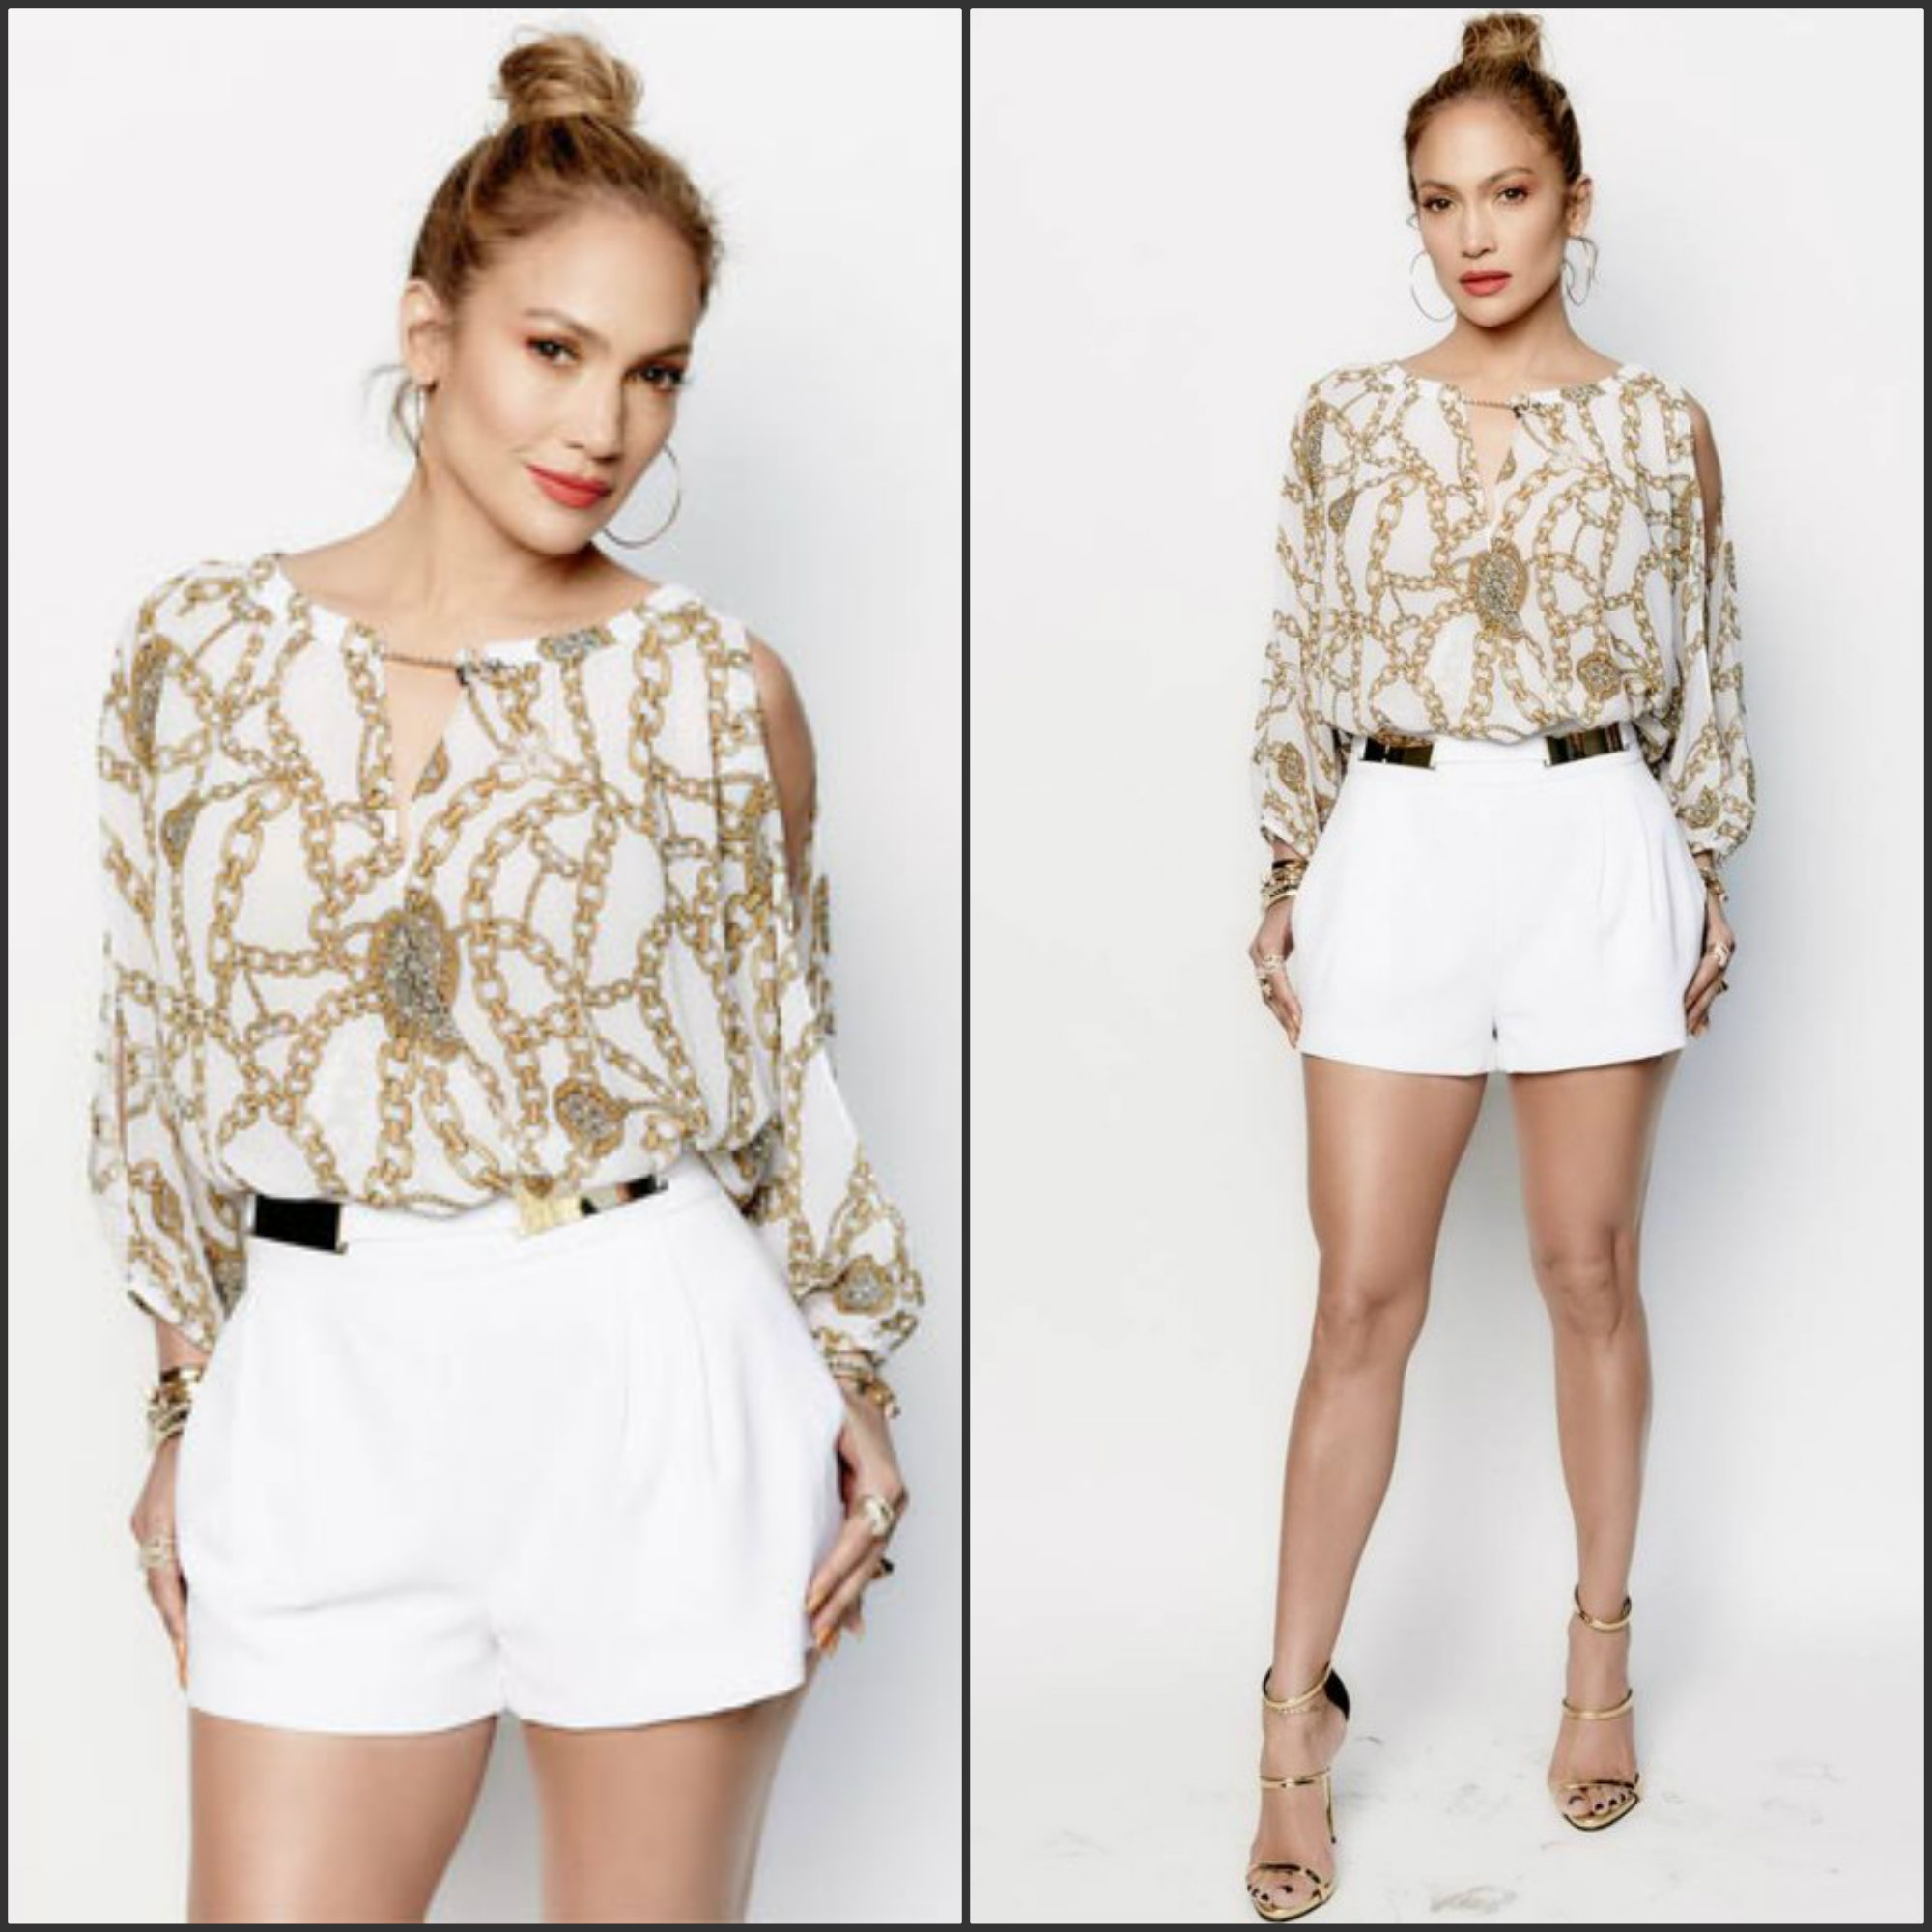 Jennifer-Lopez-in-Jennifer-Lopez-for-Kohl's-on-the-American-Idol-XIV-Show